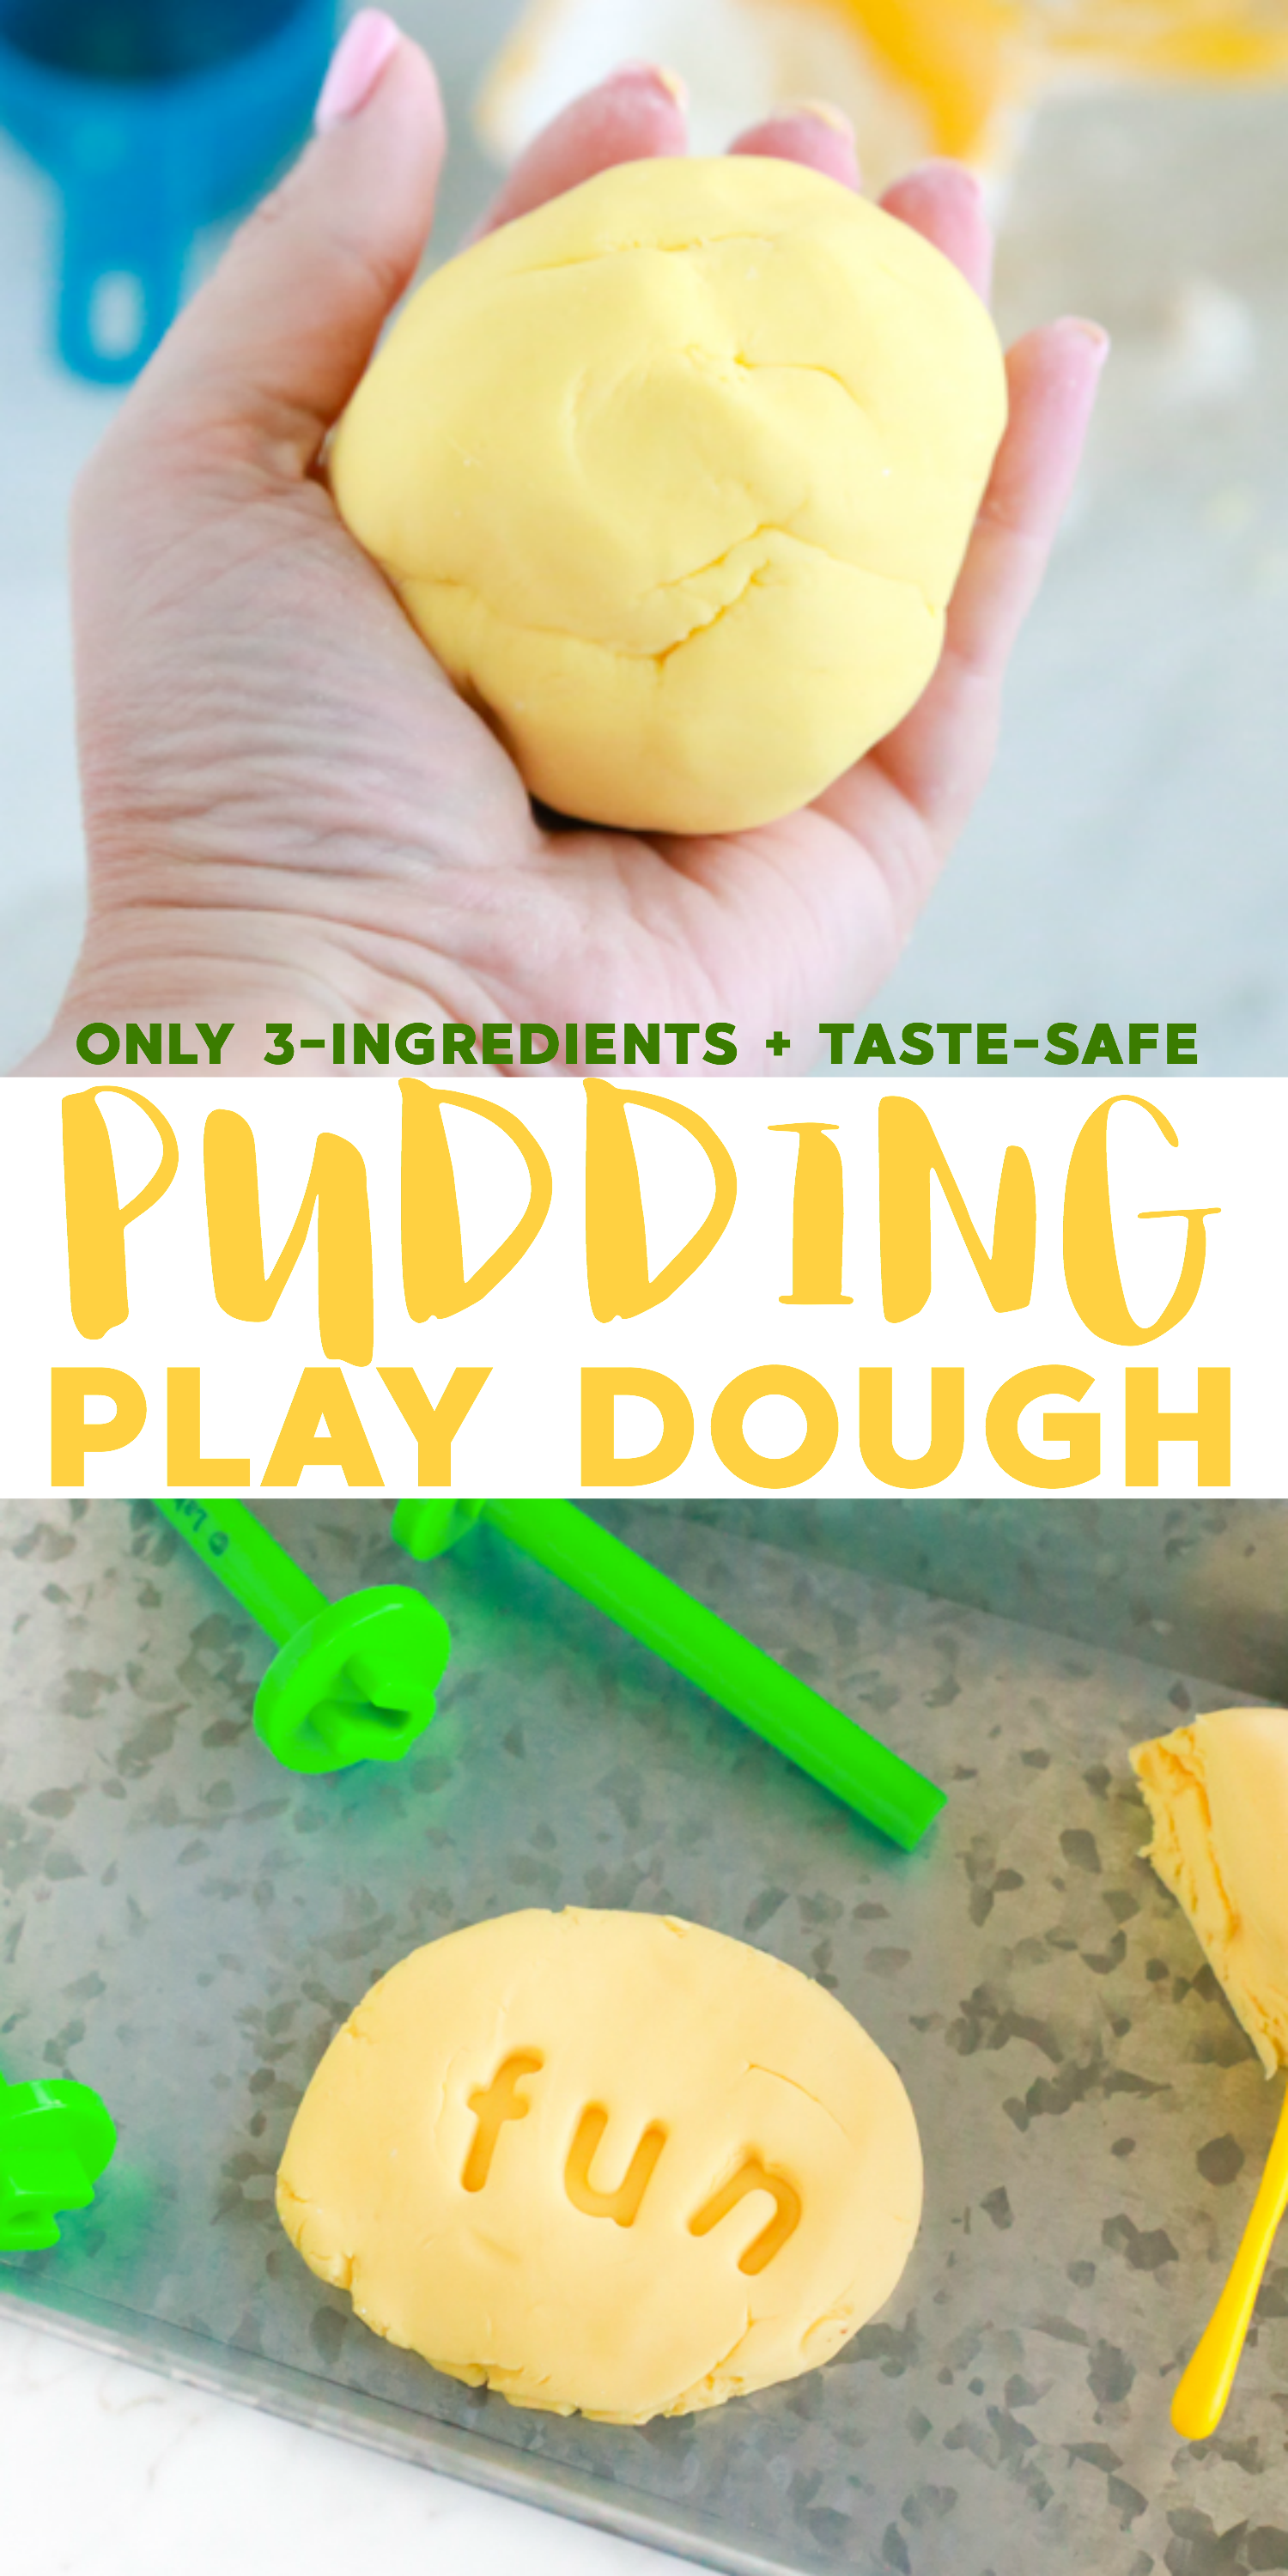 If you're looking for a fun and easy activity to keep those little hands occupied, this 3-ingredient Pudding Play Dough is the perfect choice. It's so easy to make and it smells so good when you're playing with it.